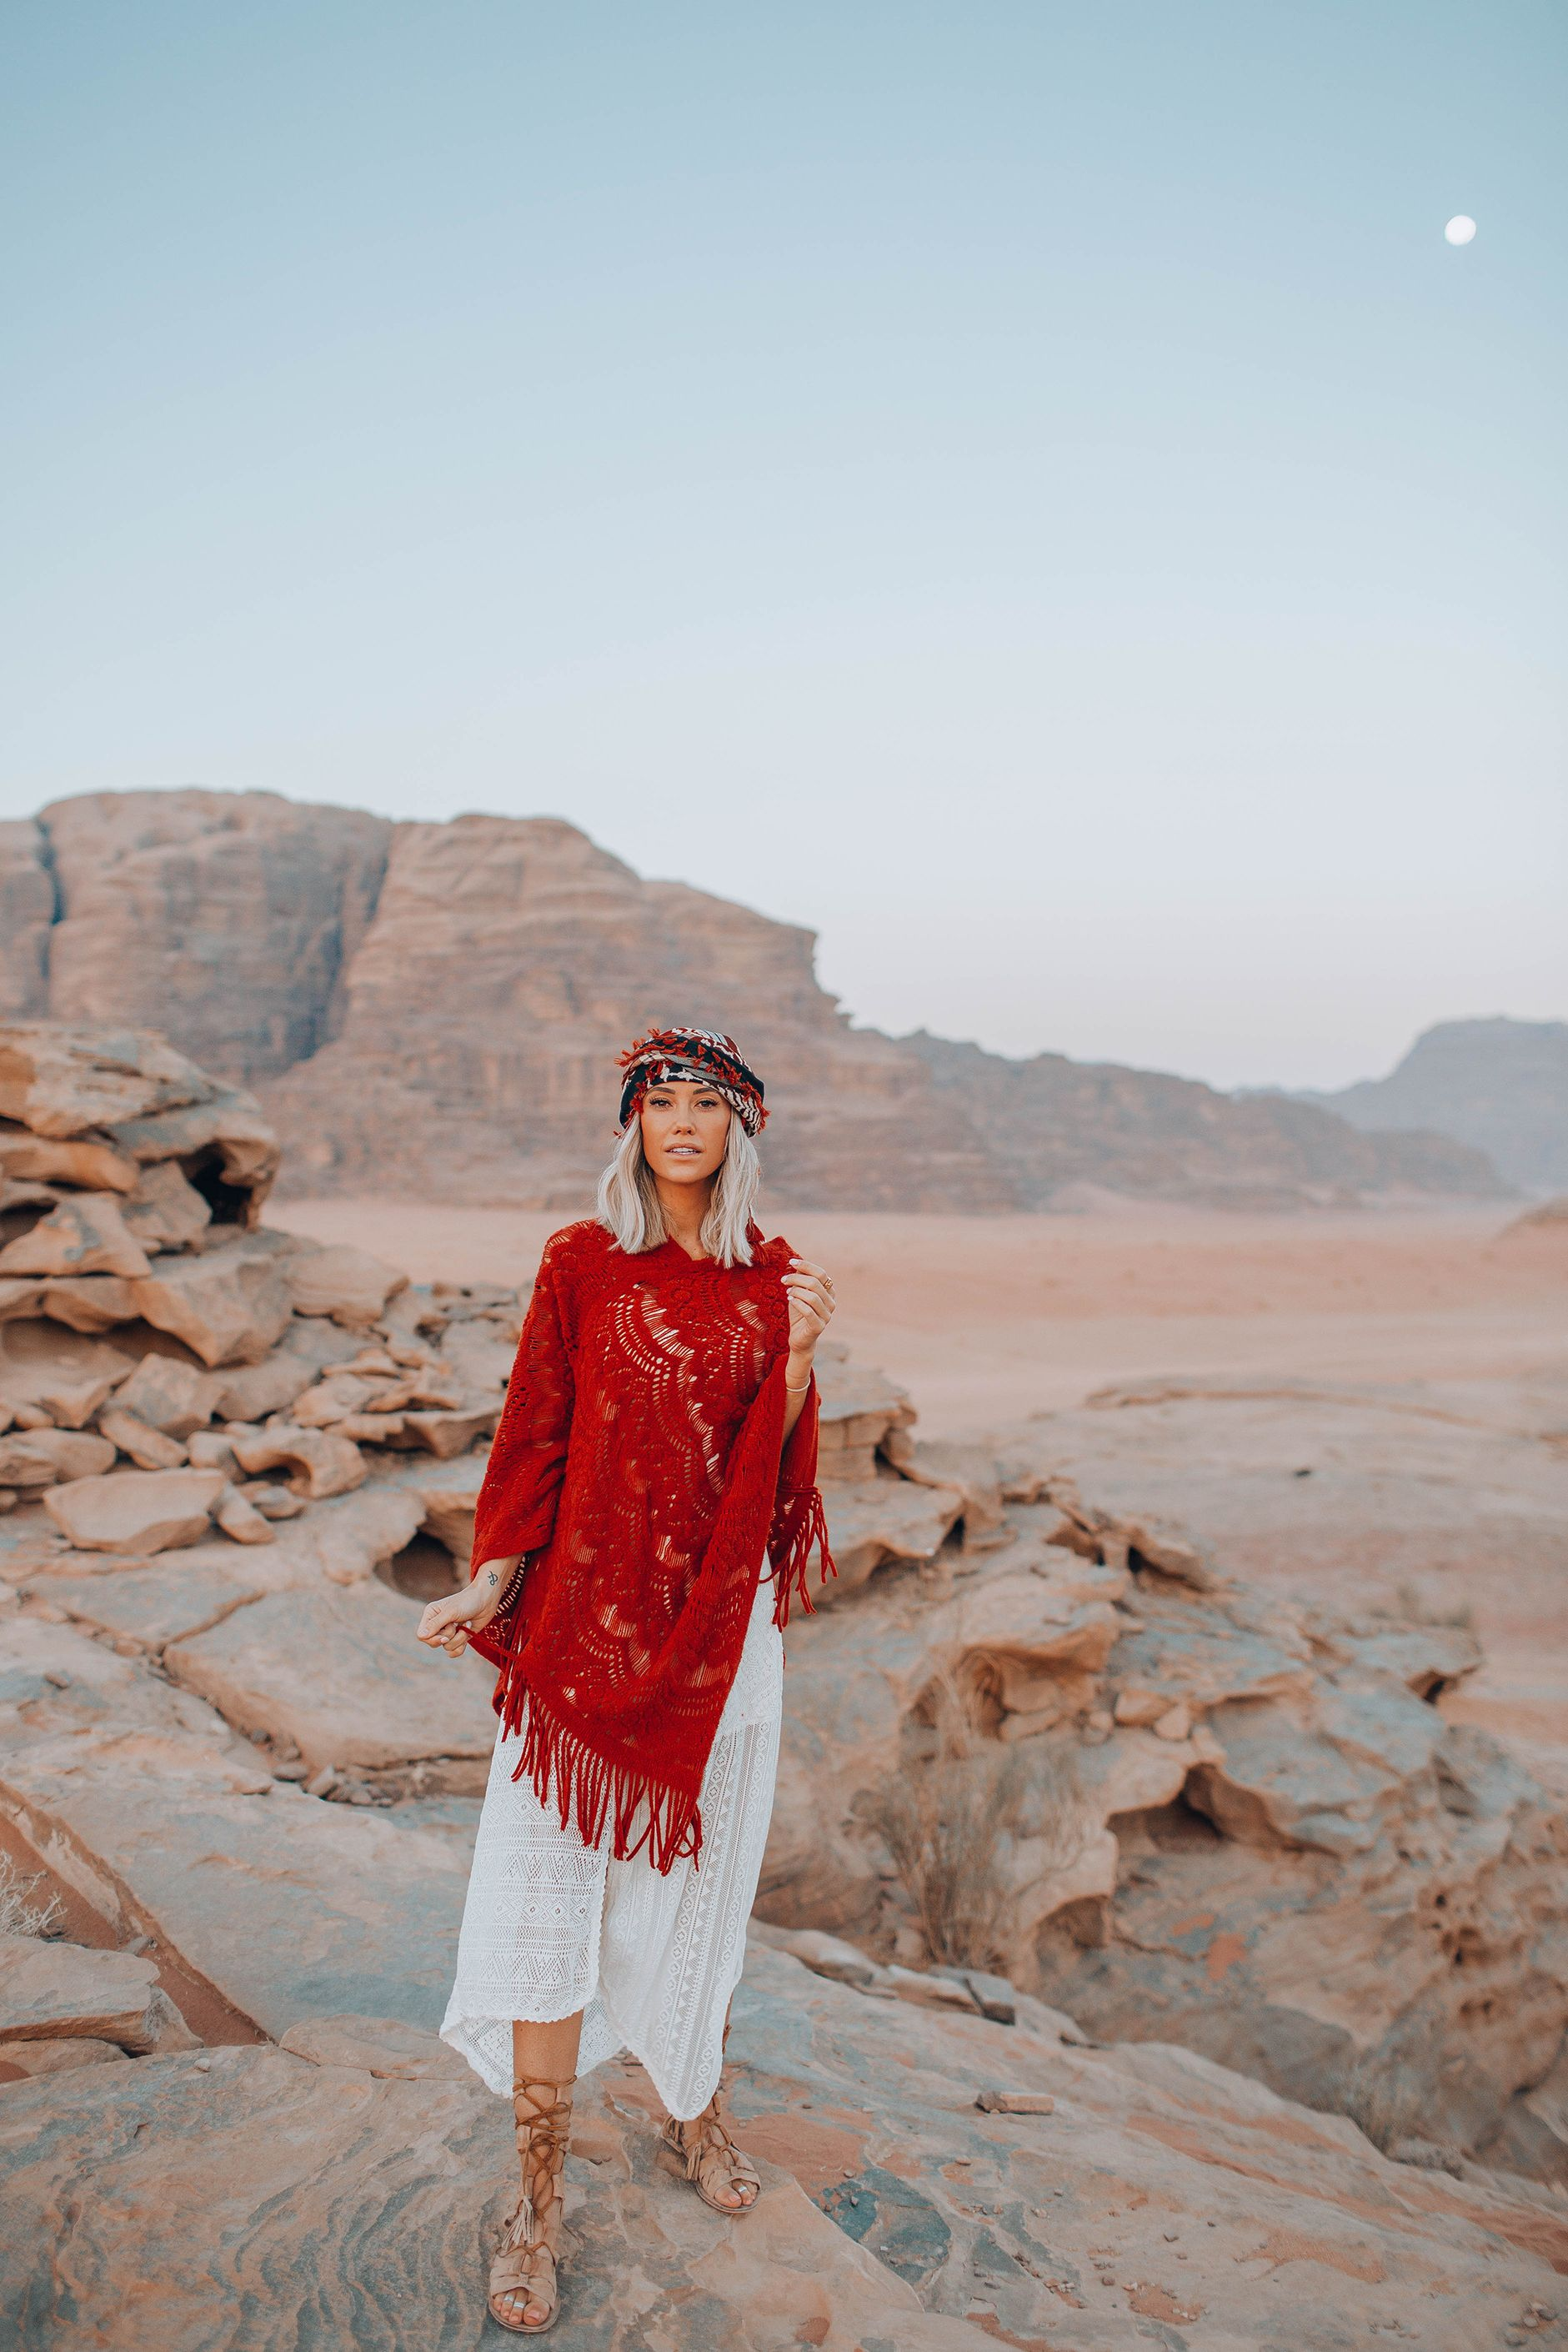 Jordan…Petra and all my favorite places!!!